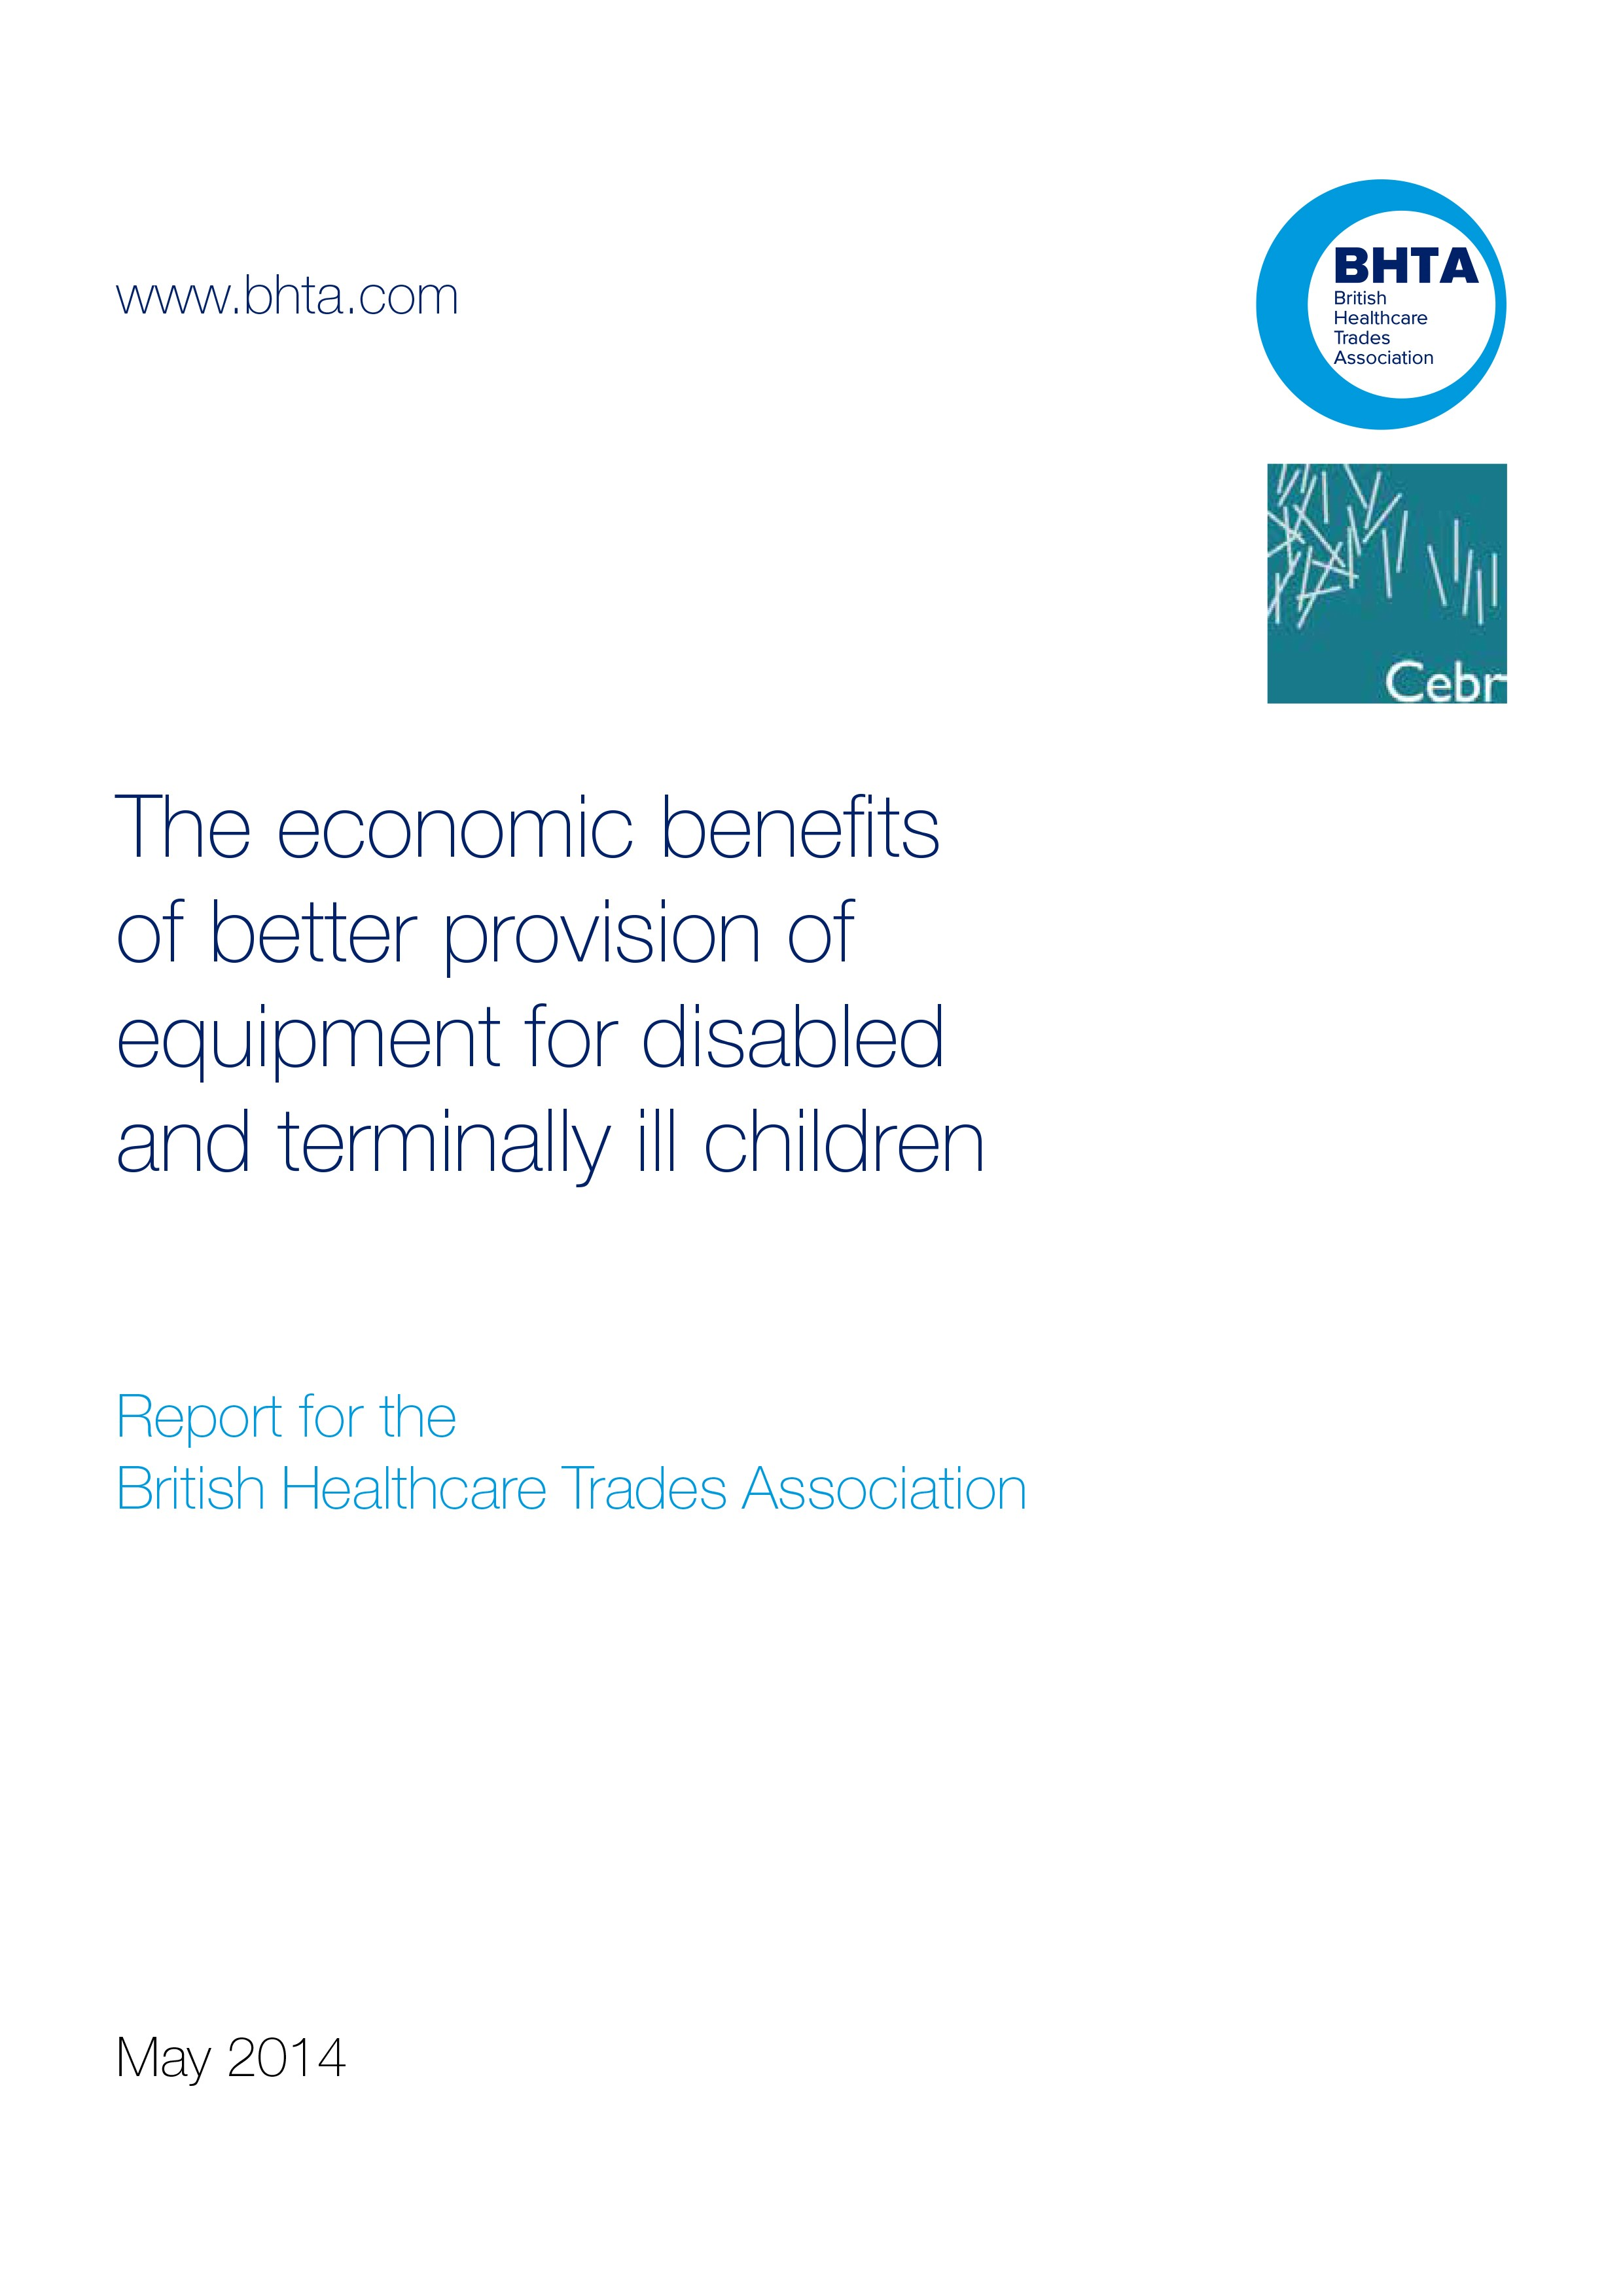 Benefits of Better Provision for Children's Equipment